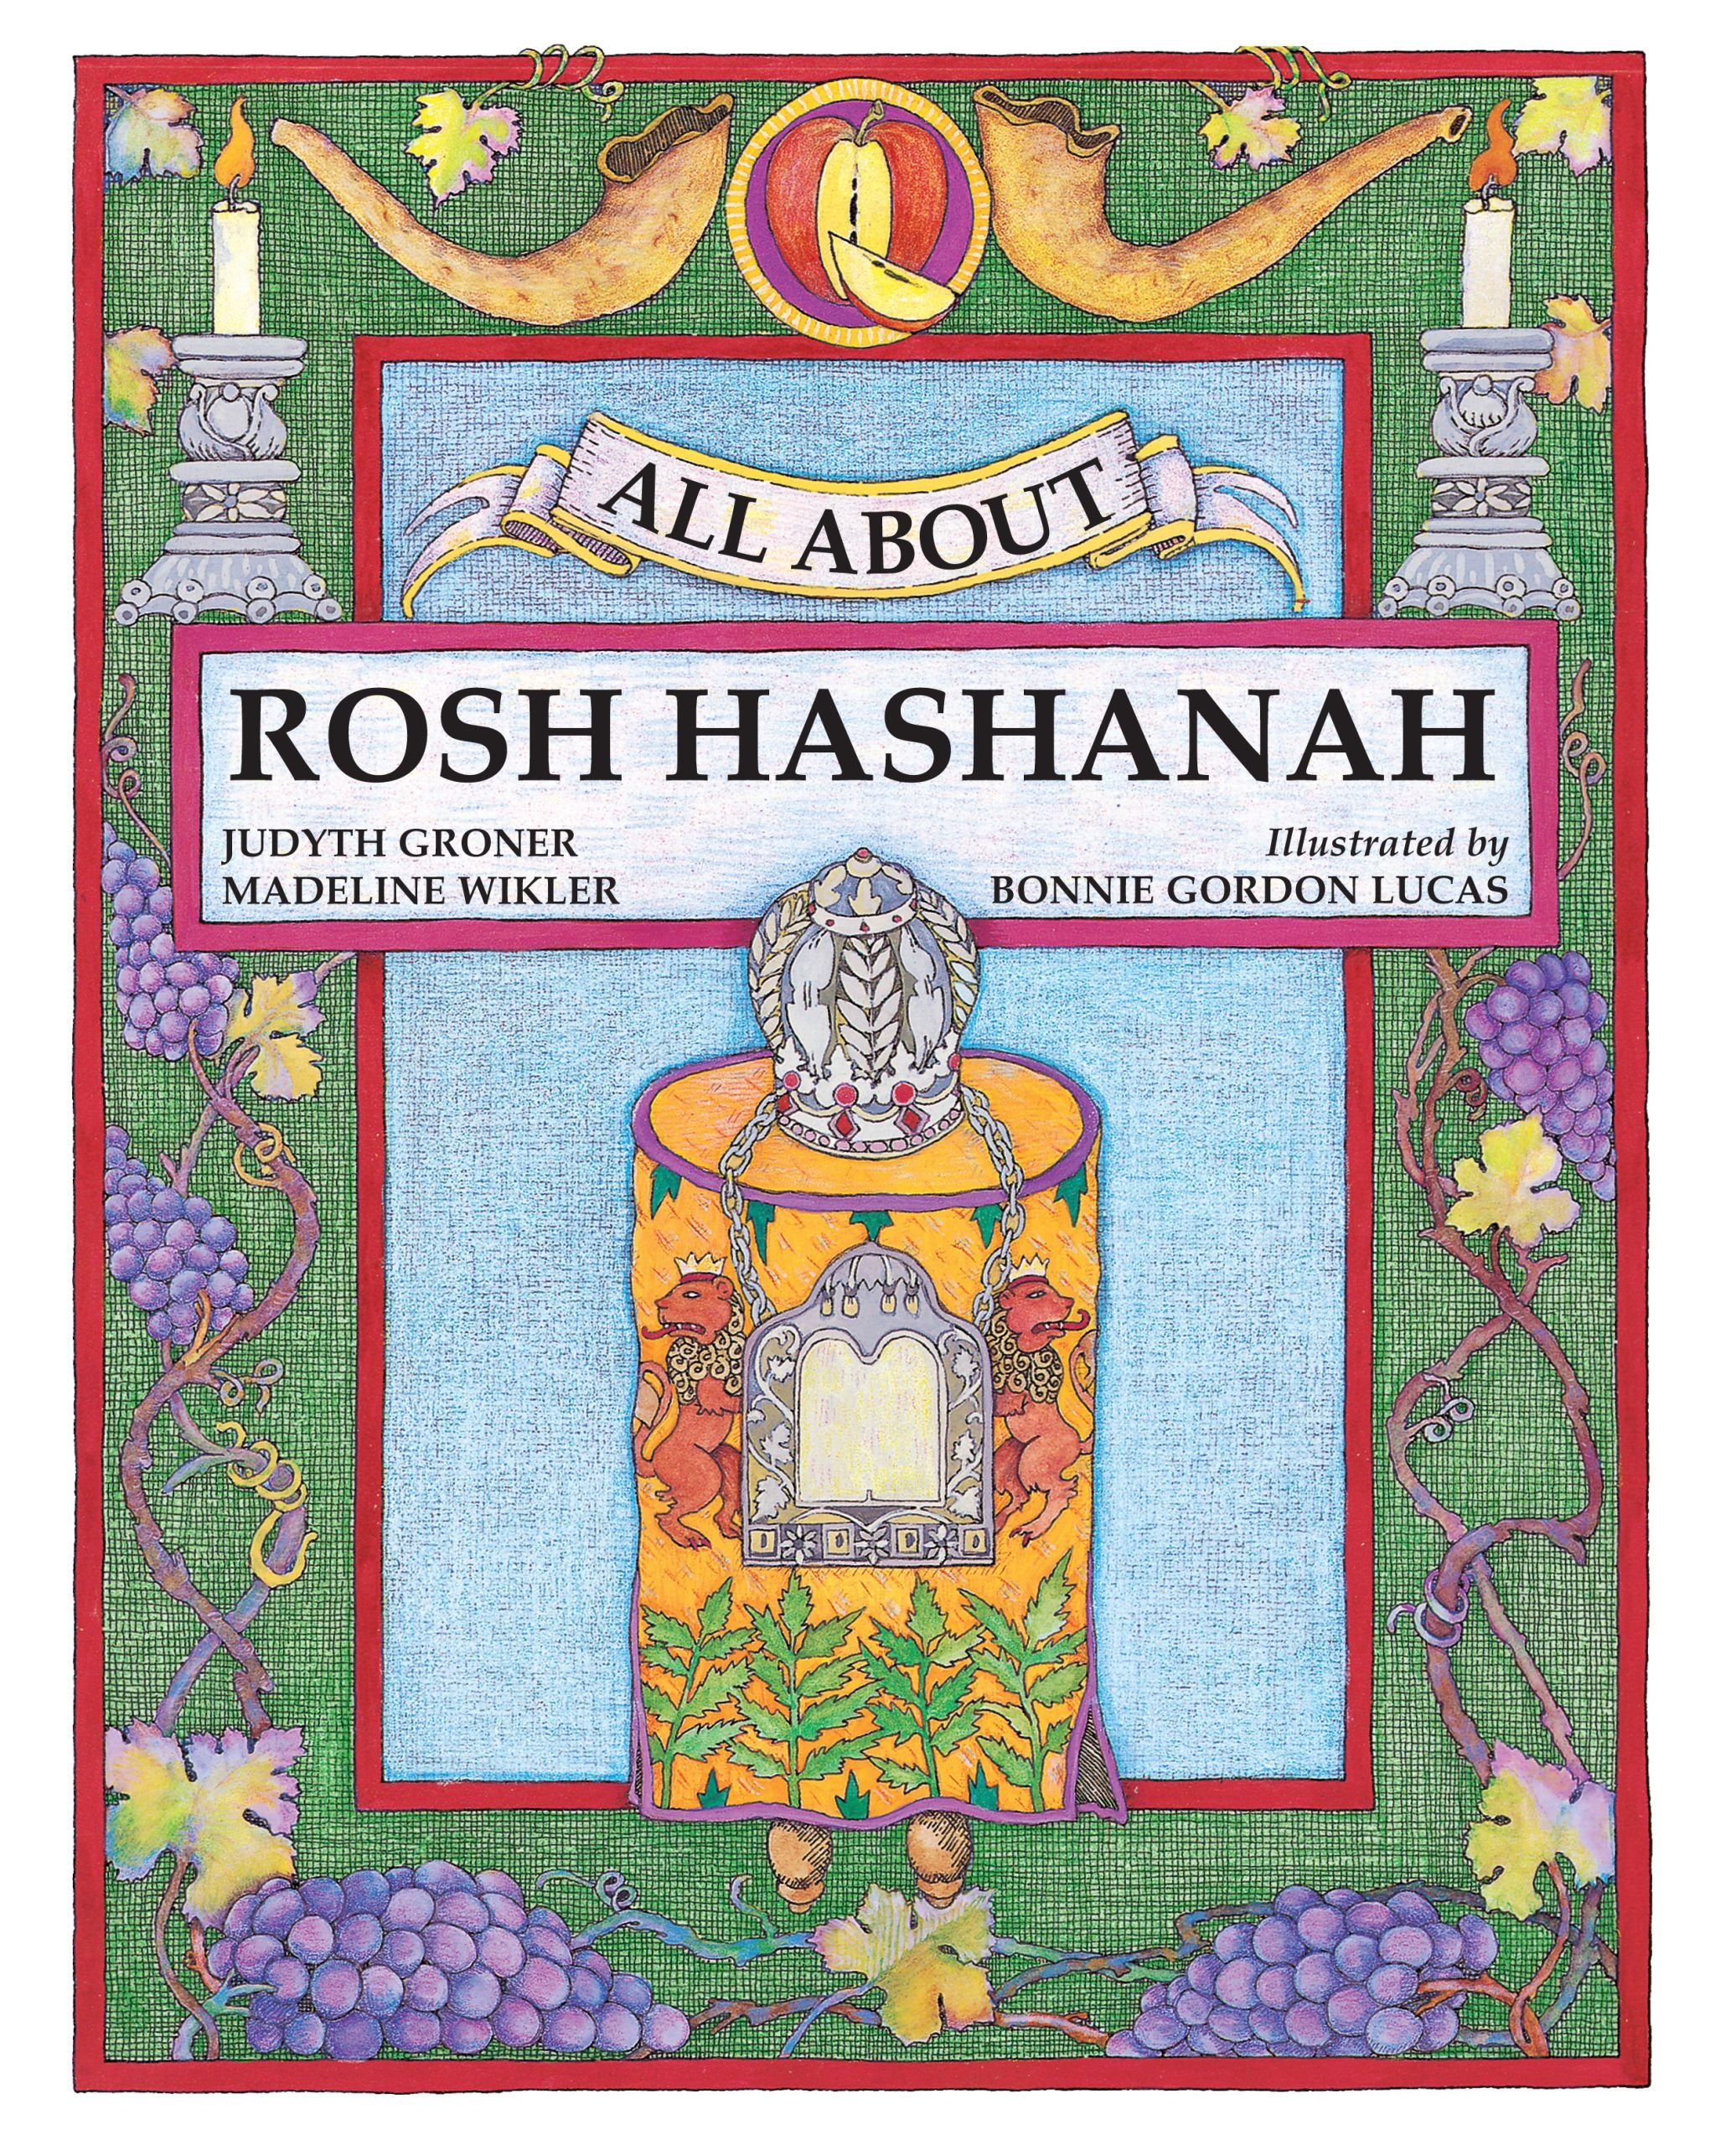 All about Rosh Hashanah (High Holidays) by Brand: Kar-Ben Publishing (Image #1)